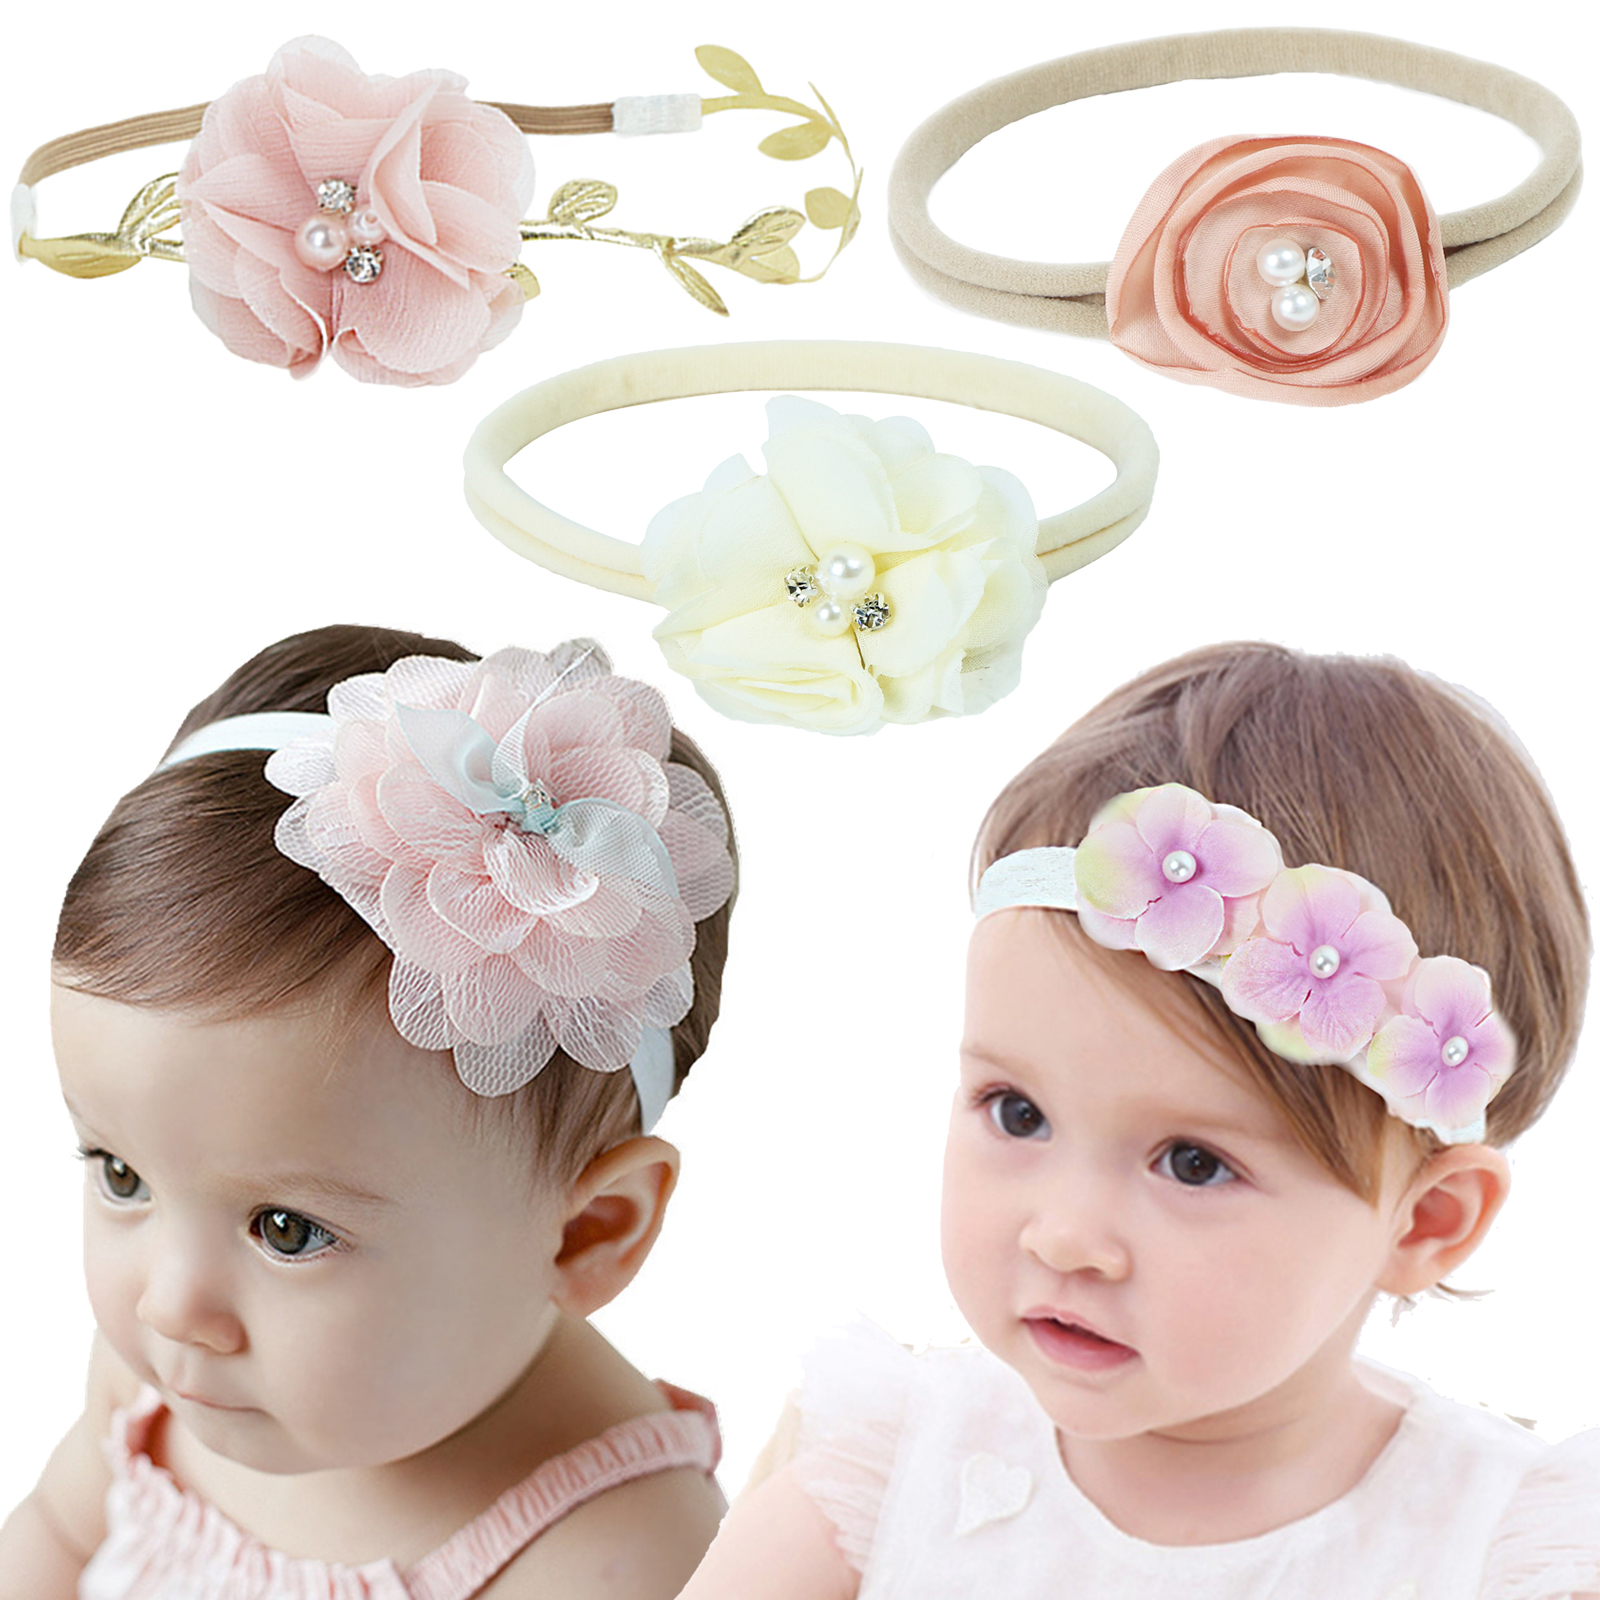 2 Pcs Fashion Baby Girl Hairband Toddlers Infant Cloth Headbands Floral Pearl Headwrap Women Summer Wear Cute Hair Accessories